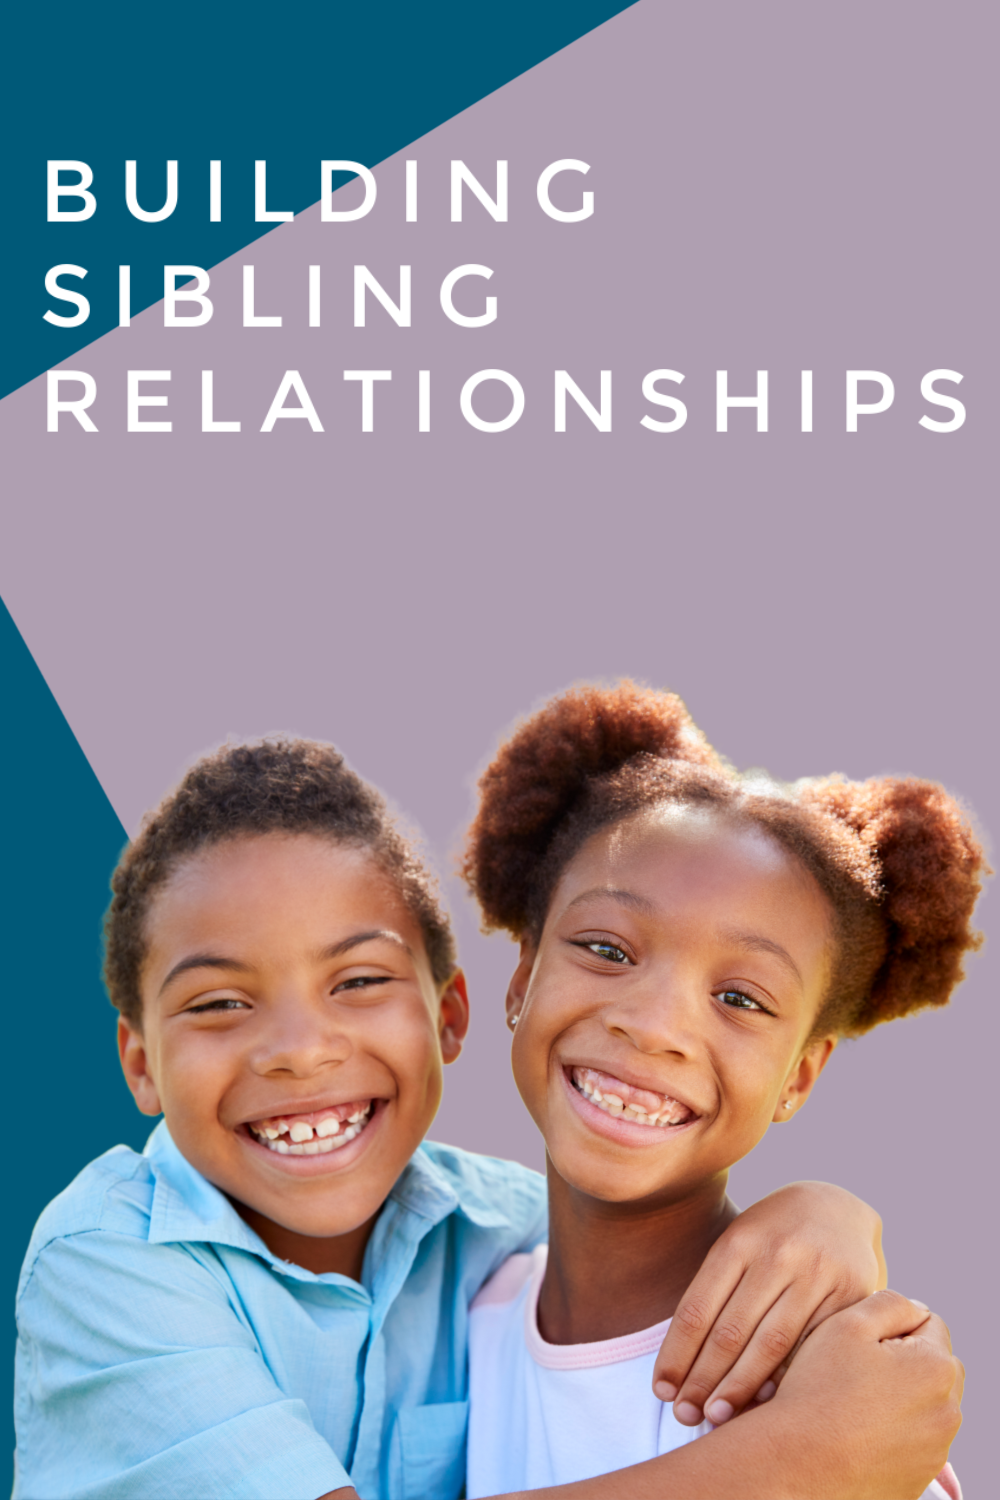 In this Montessori parenting advice podcast, we break down Nurturing sibling relationships and dealing with sibling conflicts. Peaceful solutions to welcoming a new baby and solutions for dealing with conflict between older kids.